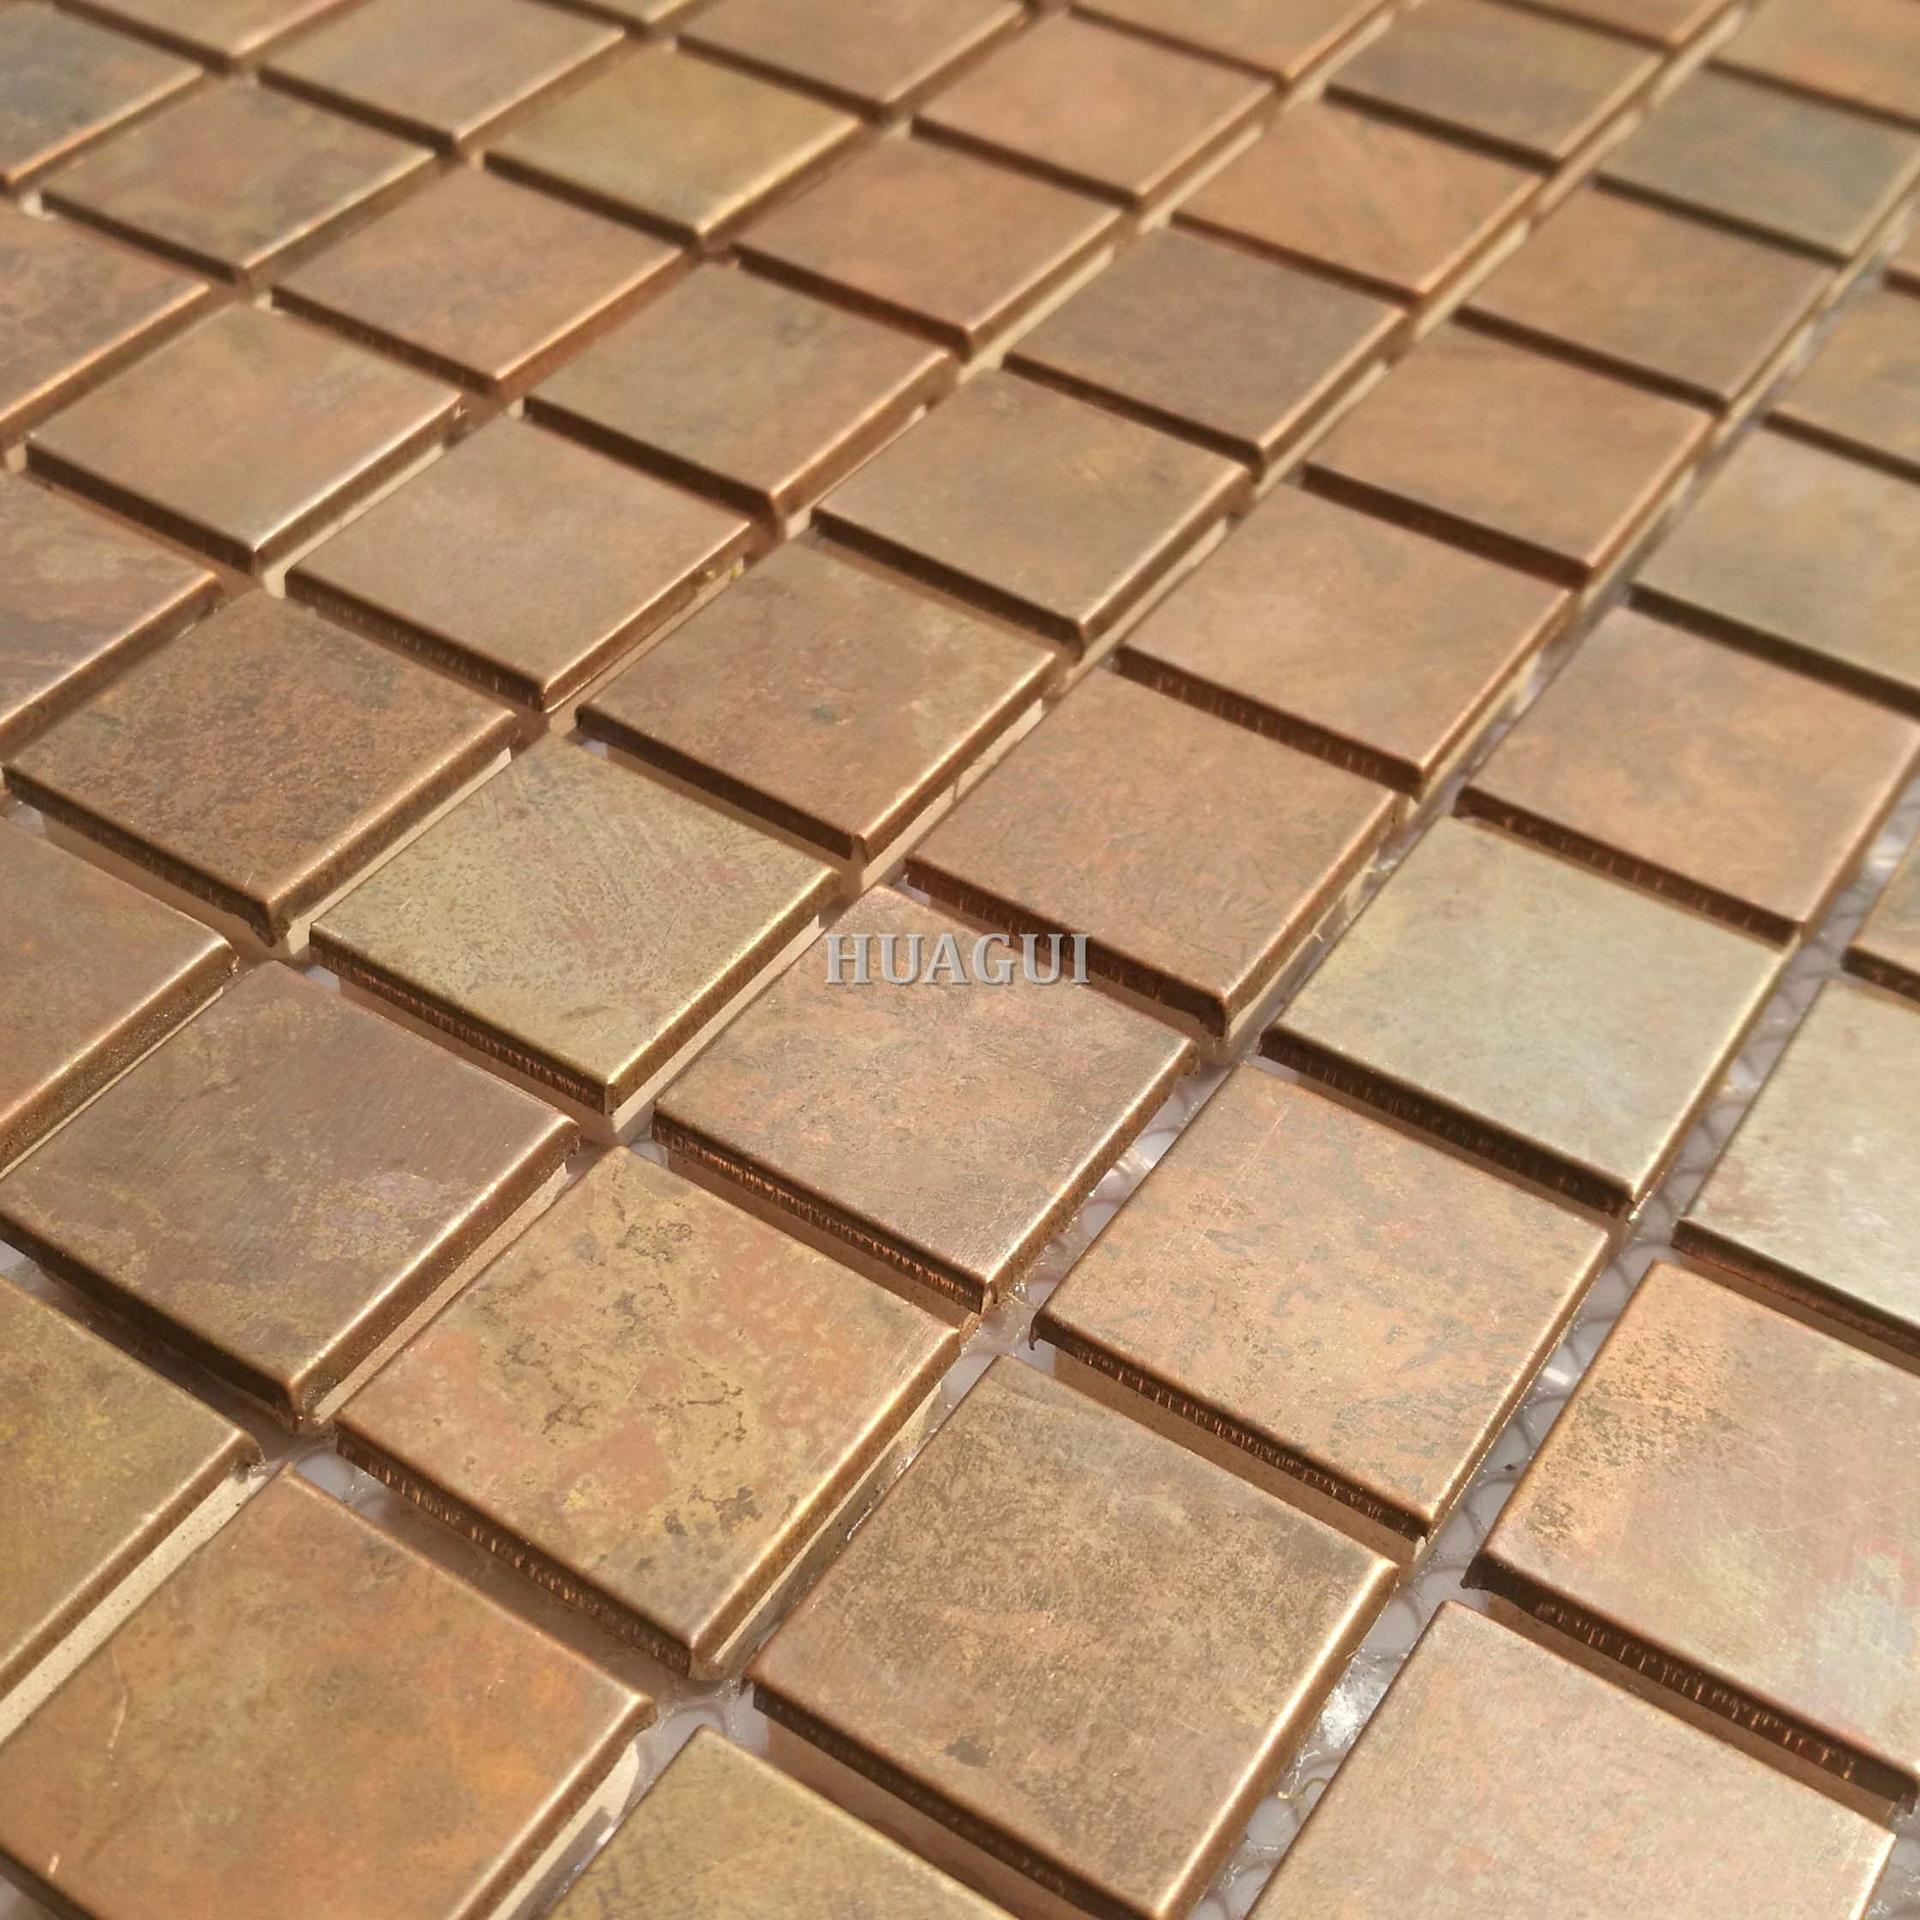 Standard size copper backsplash mosaic tile for kitchen on sale